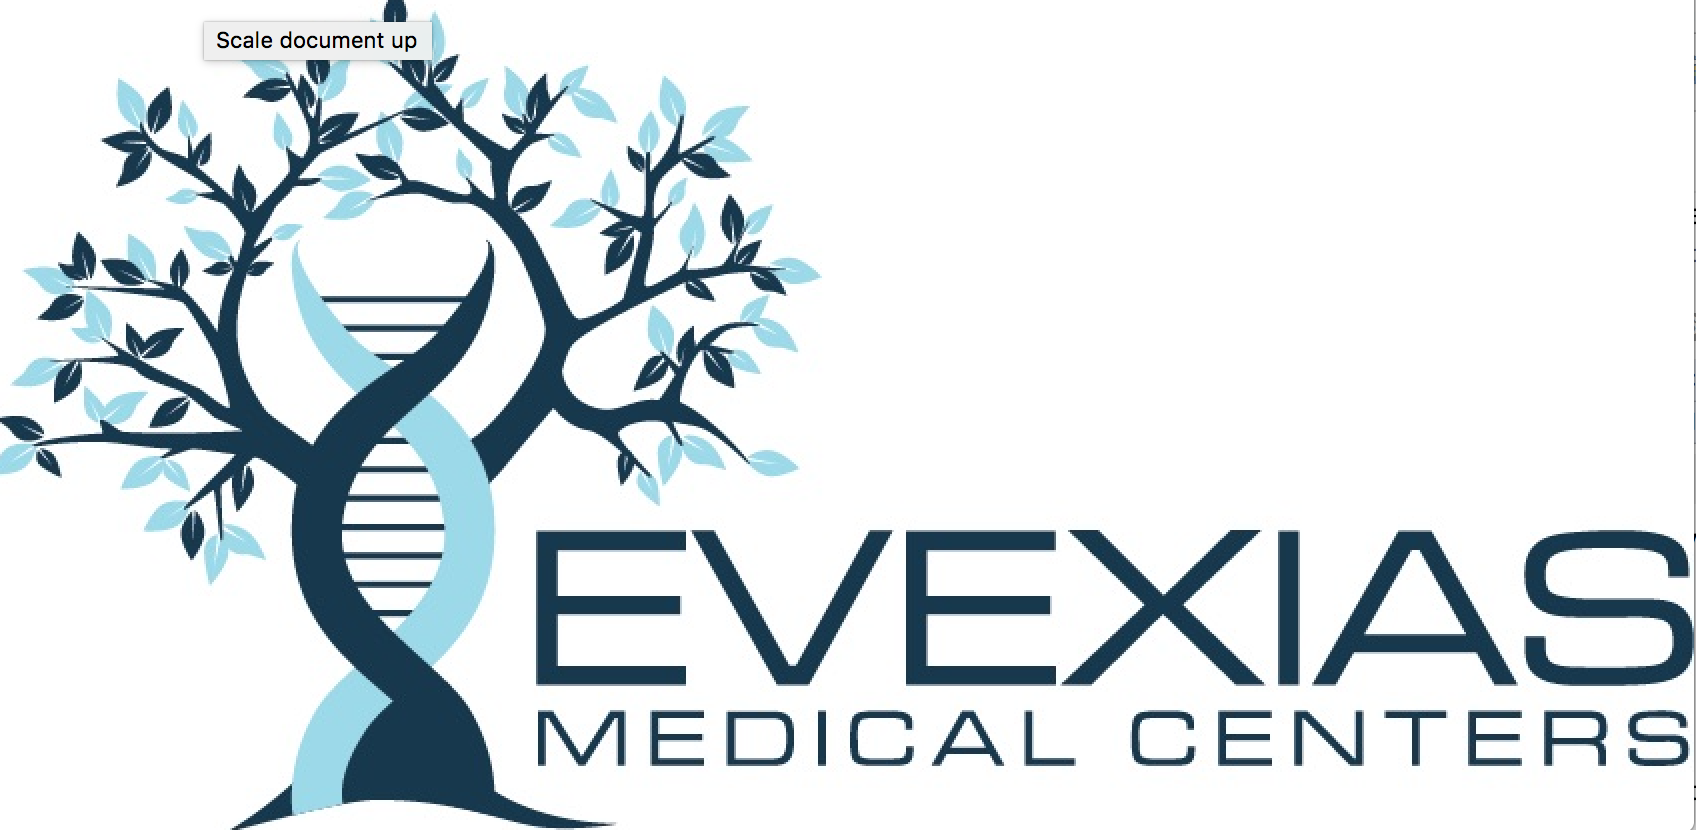 Hormonal Health And Wellness Changes Name To Evexias